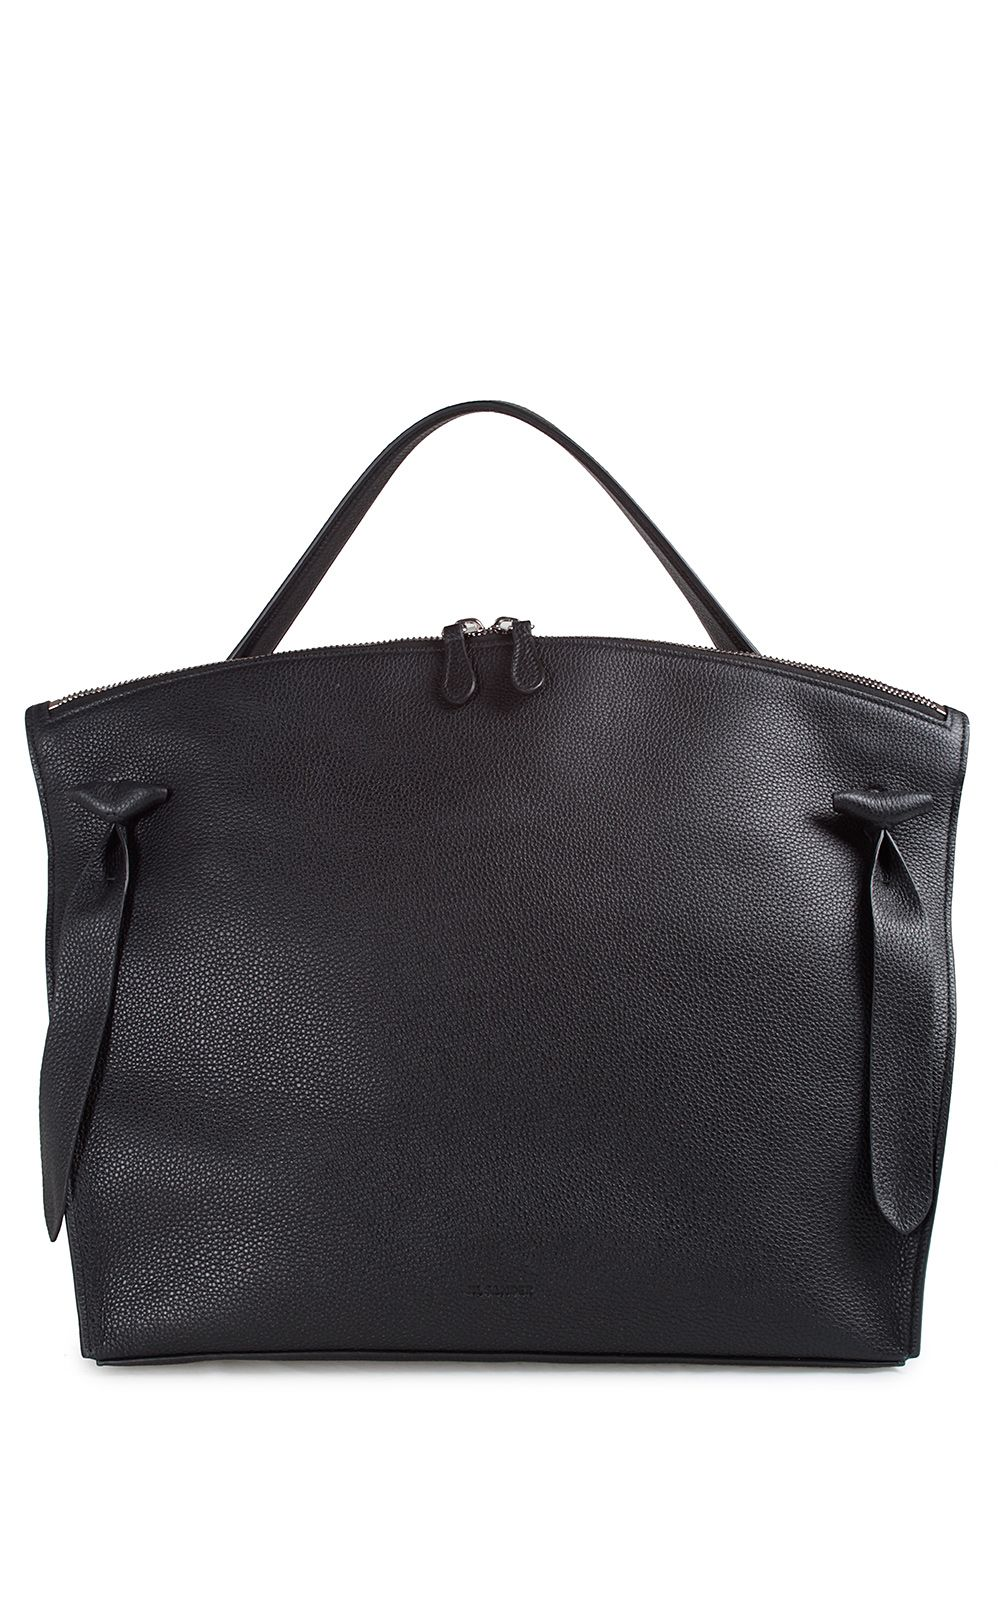 Jil Sander Hill Medium Leather Tote